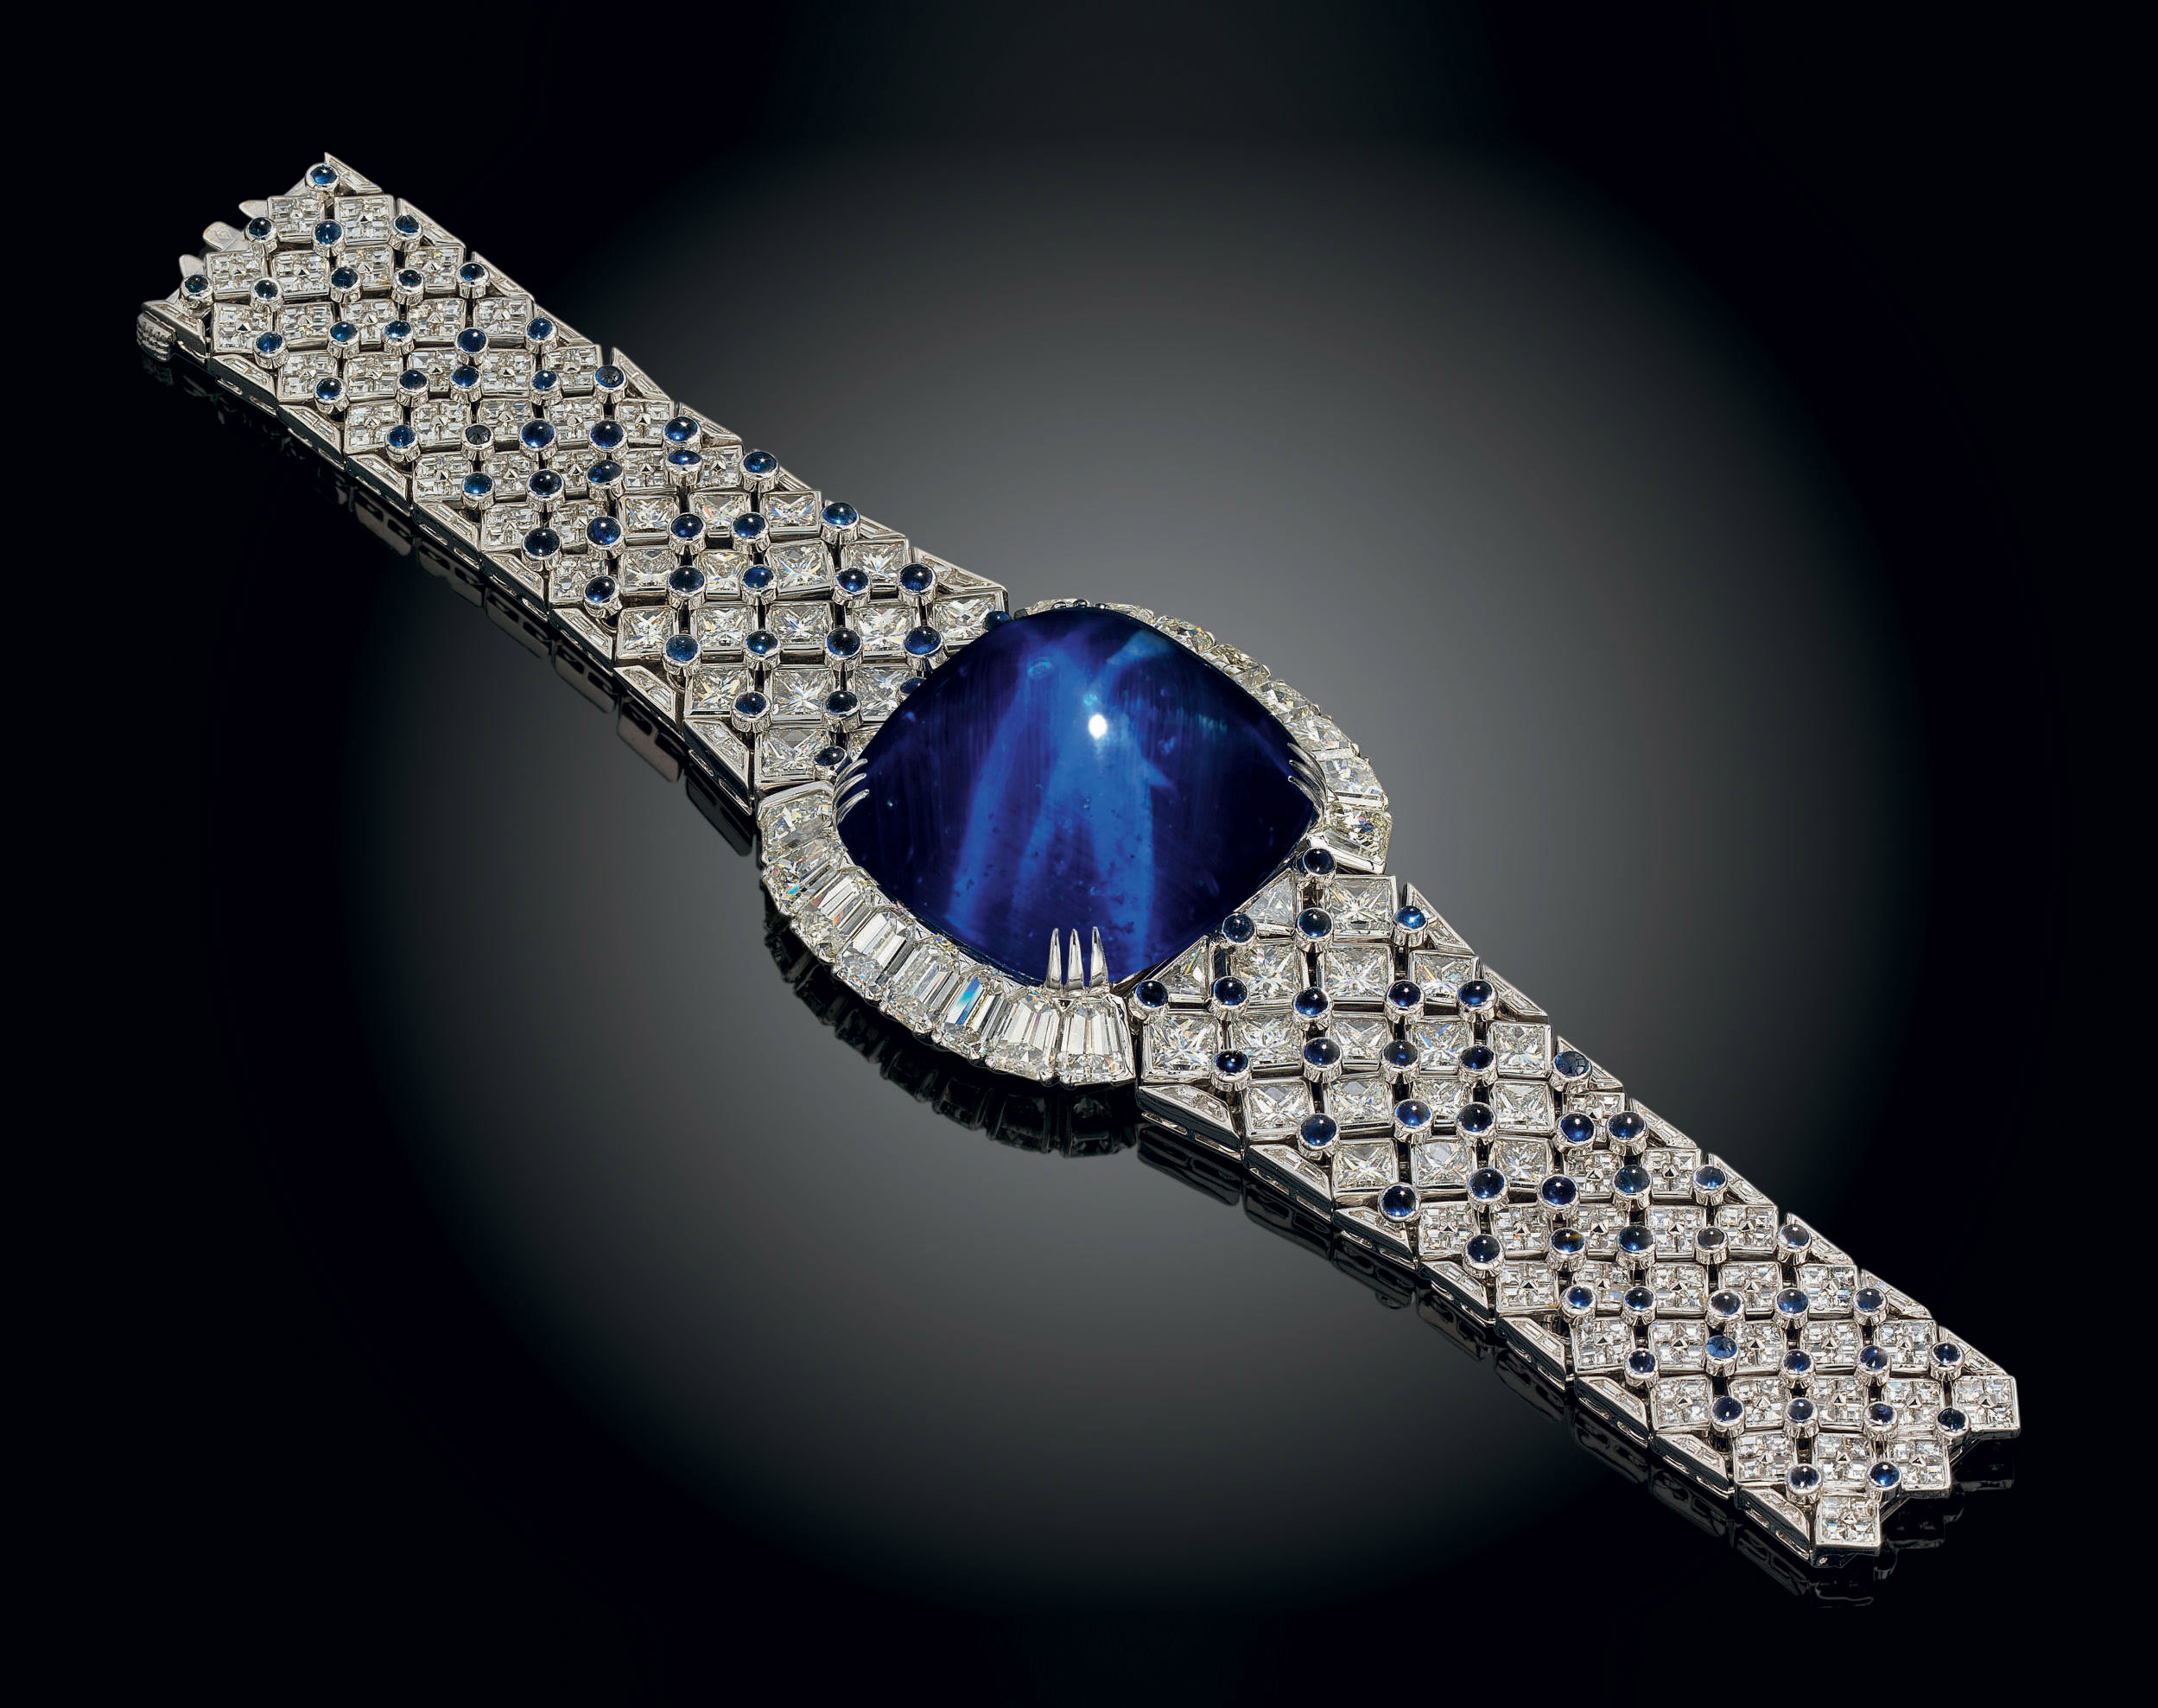 AN IMPORTANT SAPPHIRE AND DIAMOND BRACELET, BY MOUAWAD